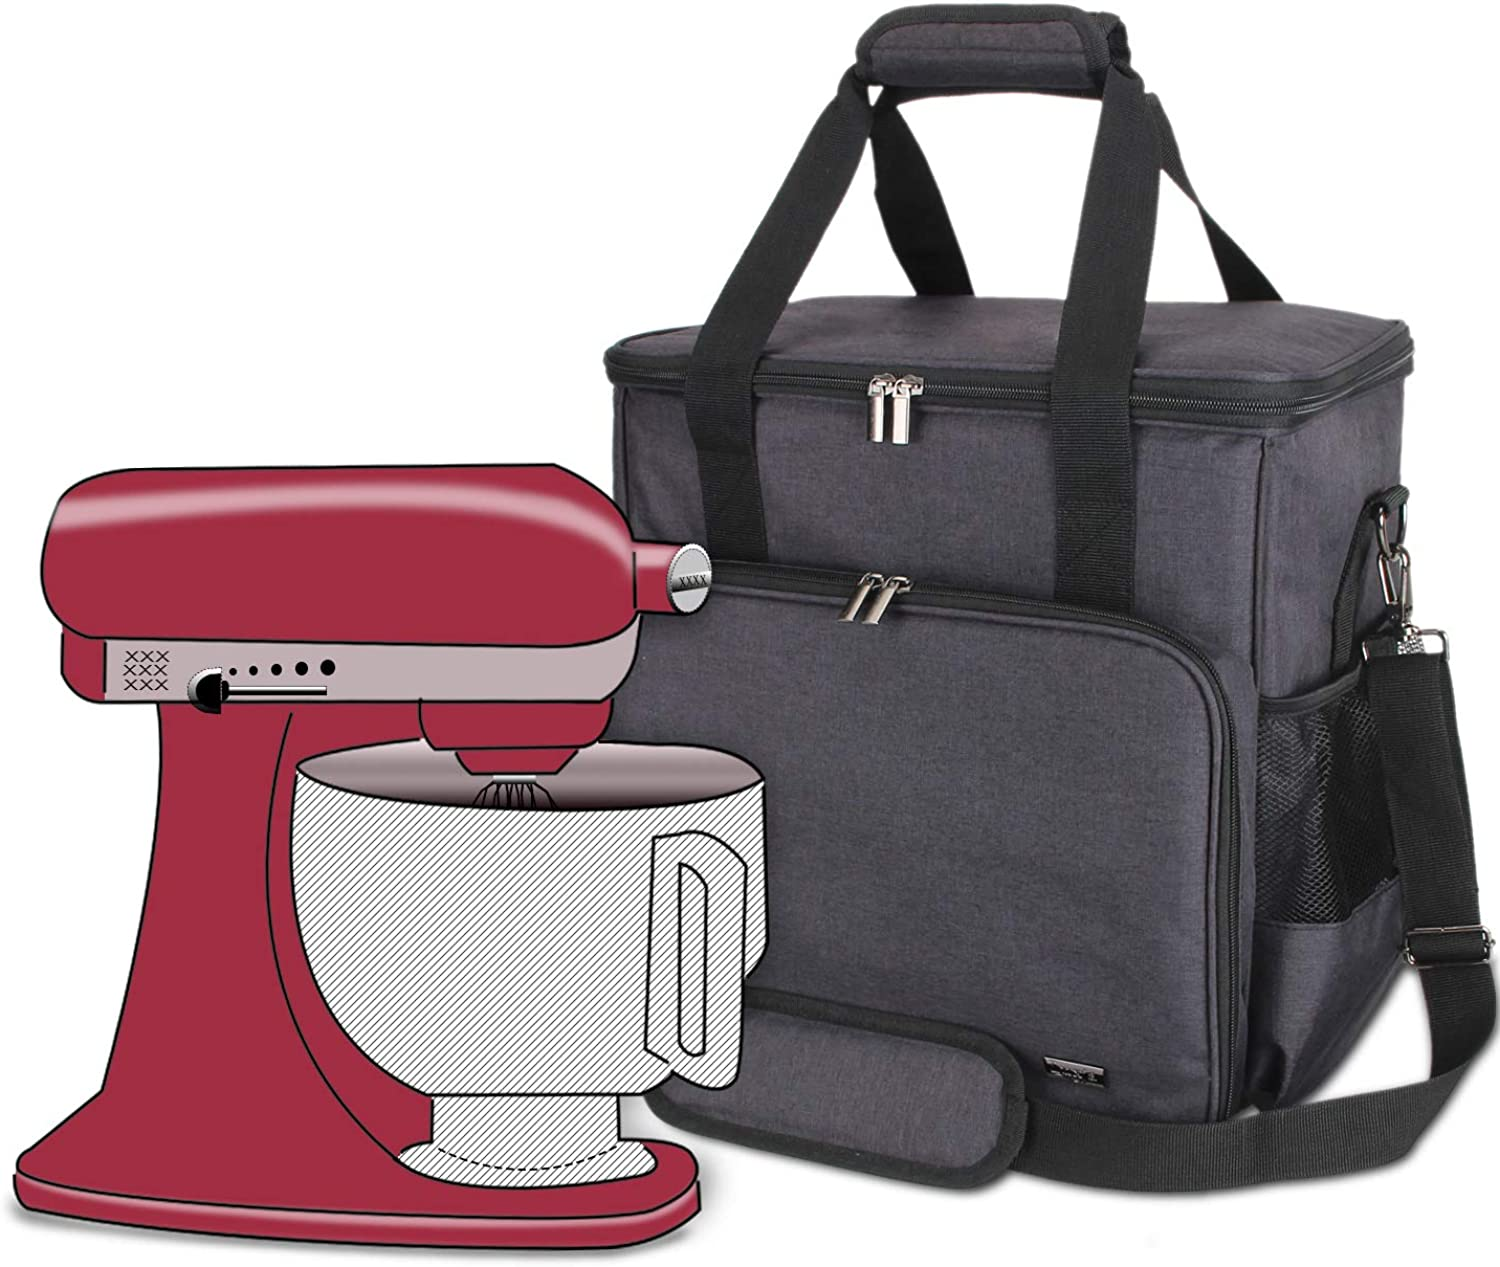 Luxja Portable Storage Bag for KitchenAid Mixers and Extra Accessories (Compatible with 4.5-Quart and All 5-Quart KitchenAid Mixers), NO ACCESSORIES INCLUDED, Black